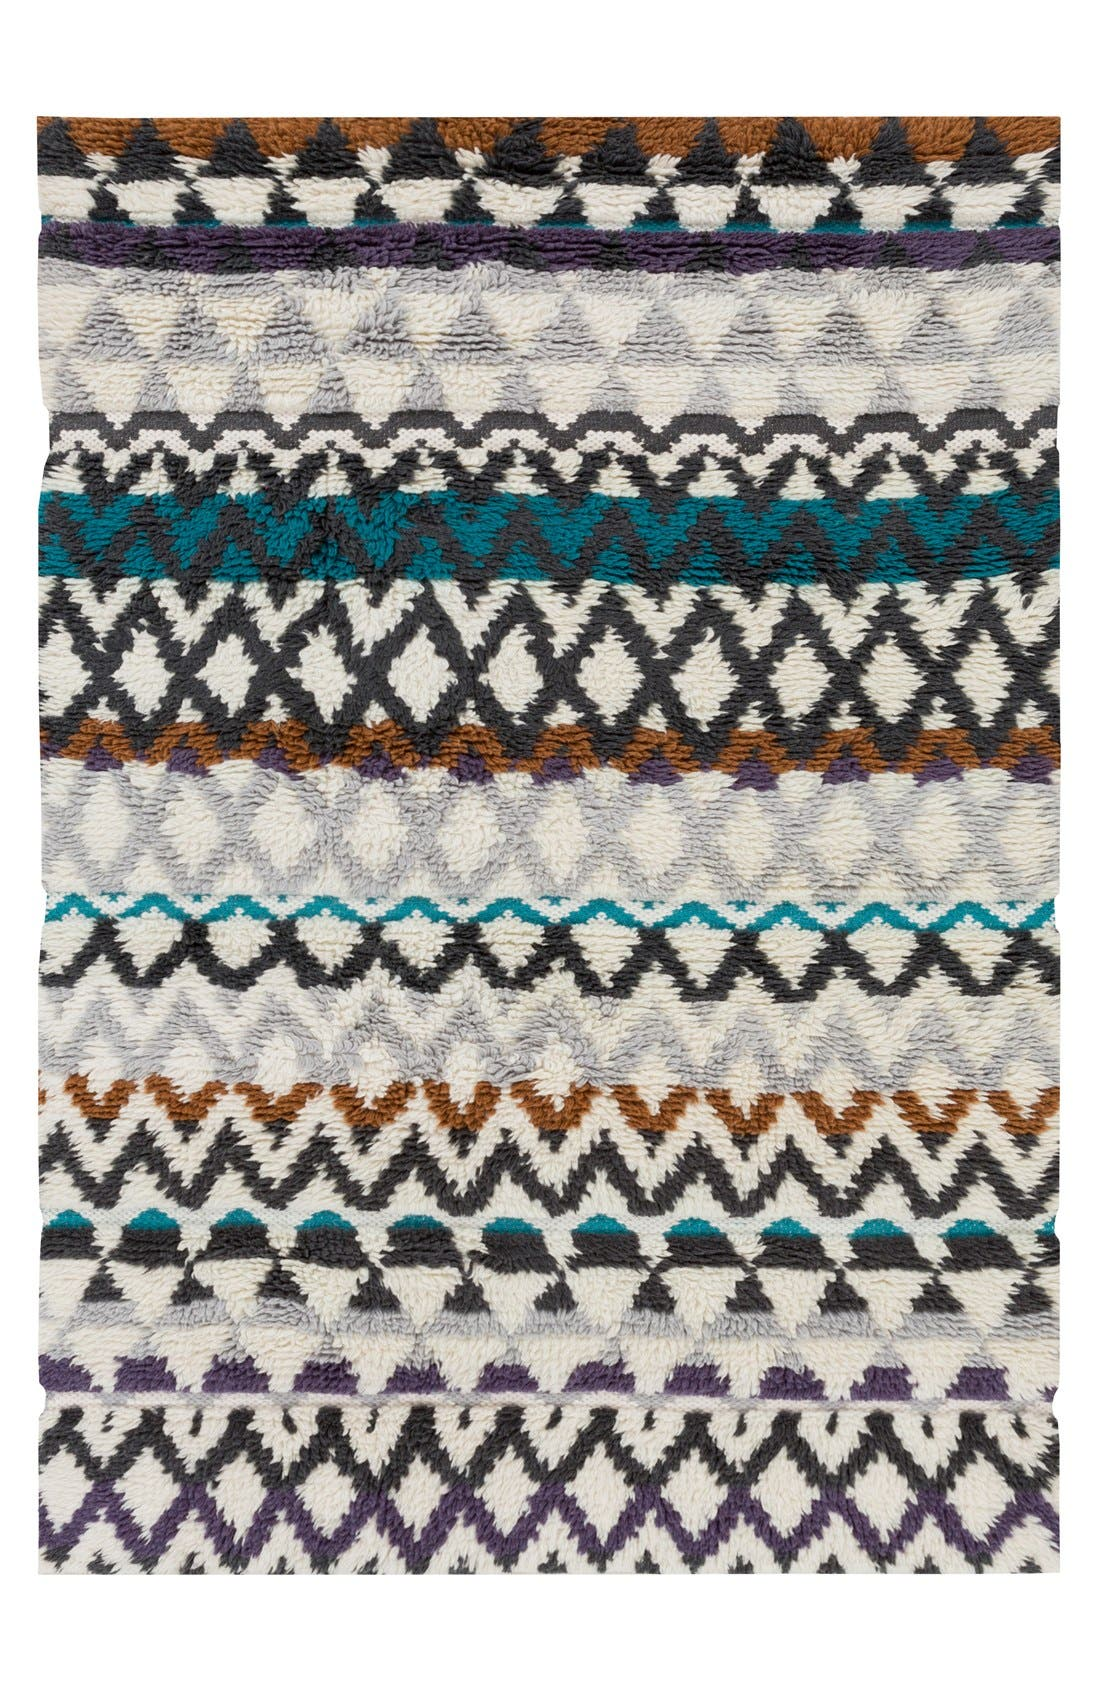 'Atticus' Hand Woven Wool Rug,                         Main,                         color, Violet/ Charcoal Multi